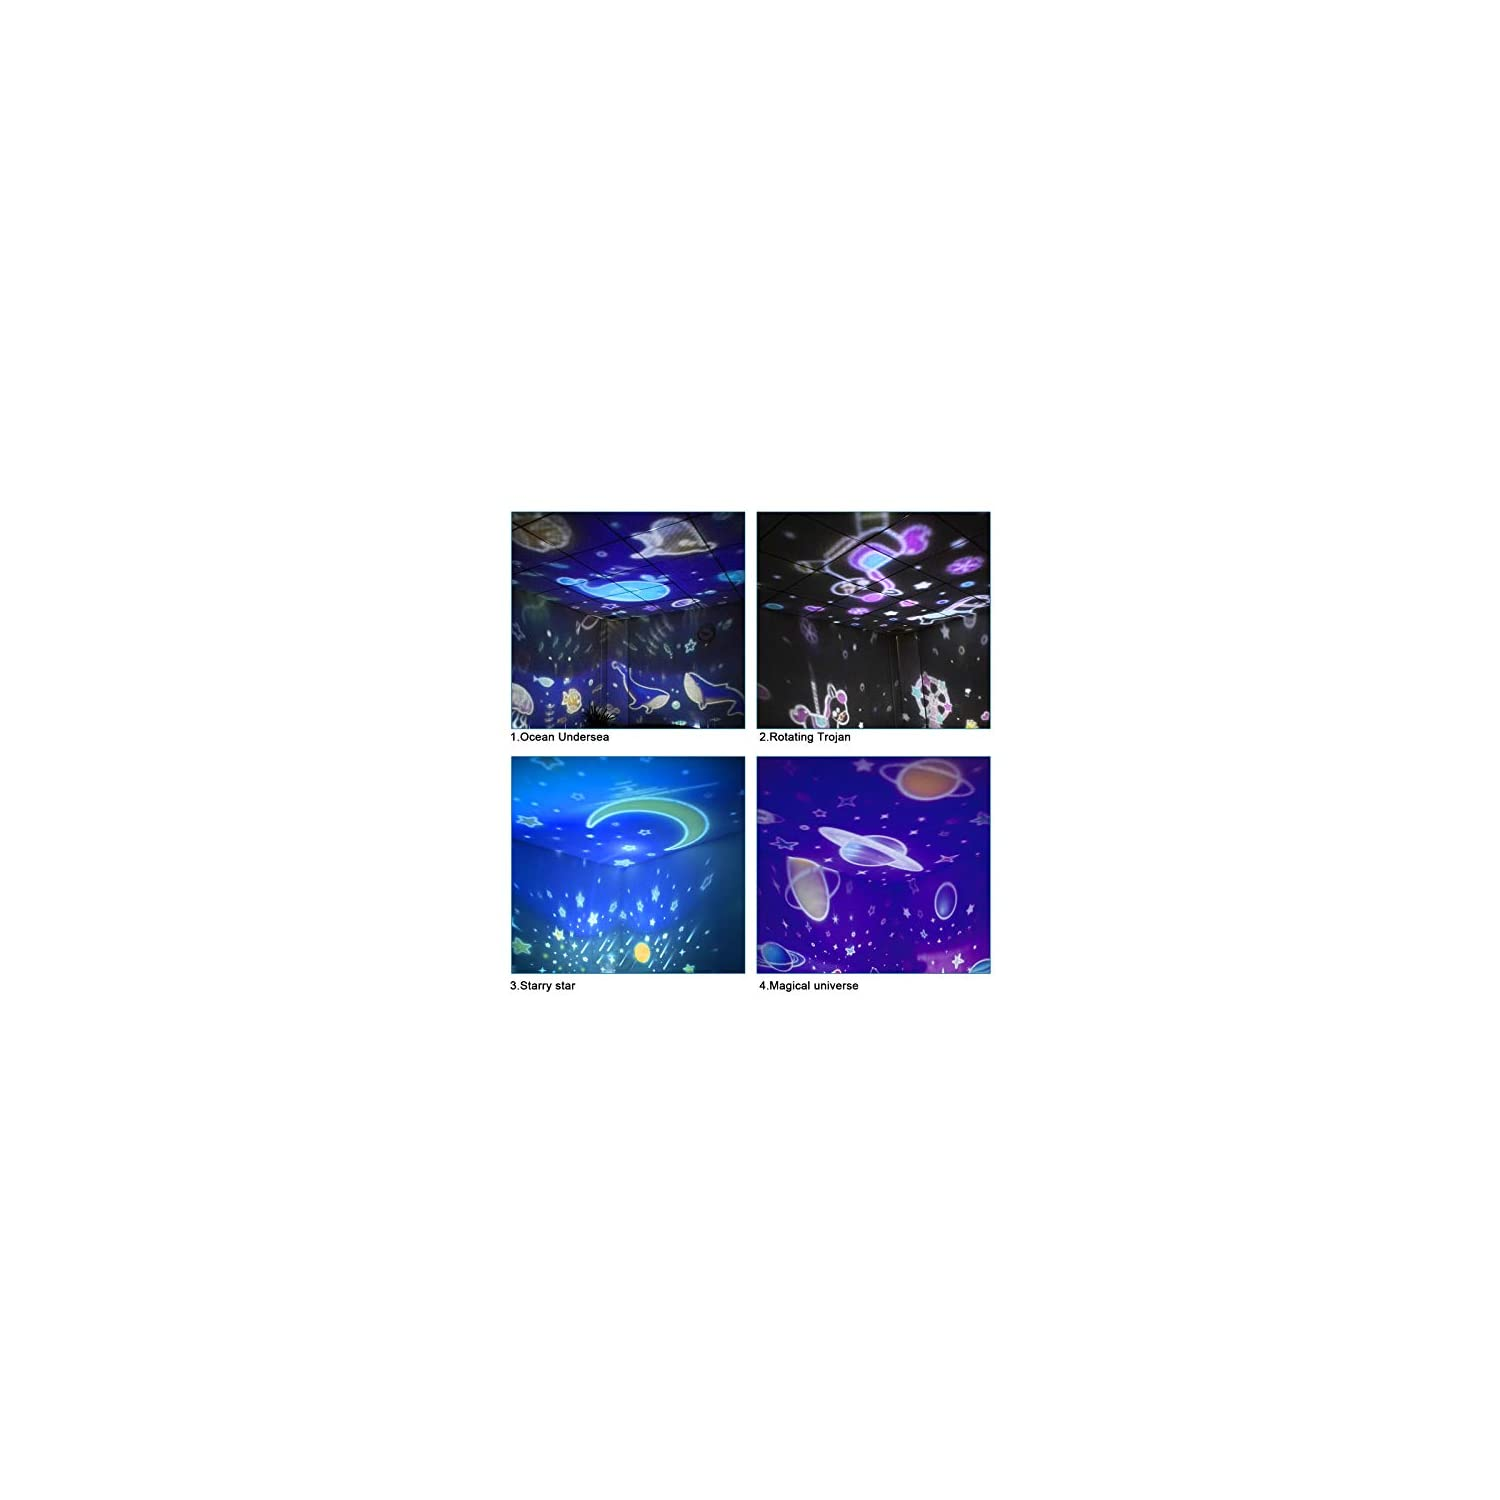 Star Projector Night Light for Kids, Johgee 360 Degree Rotating Star Night Light with 4 Sets of Film, 9 Lighting Effects and 6.6FT USB Cable for Kids Bedroom/Birthday Party, Christrmas Gifts